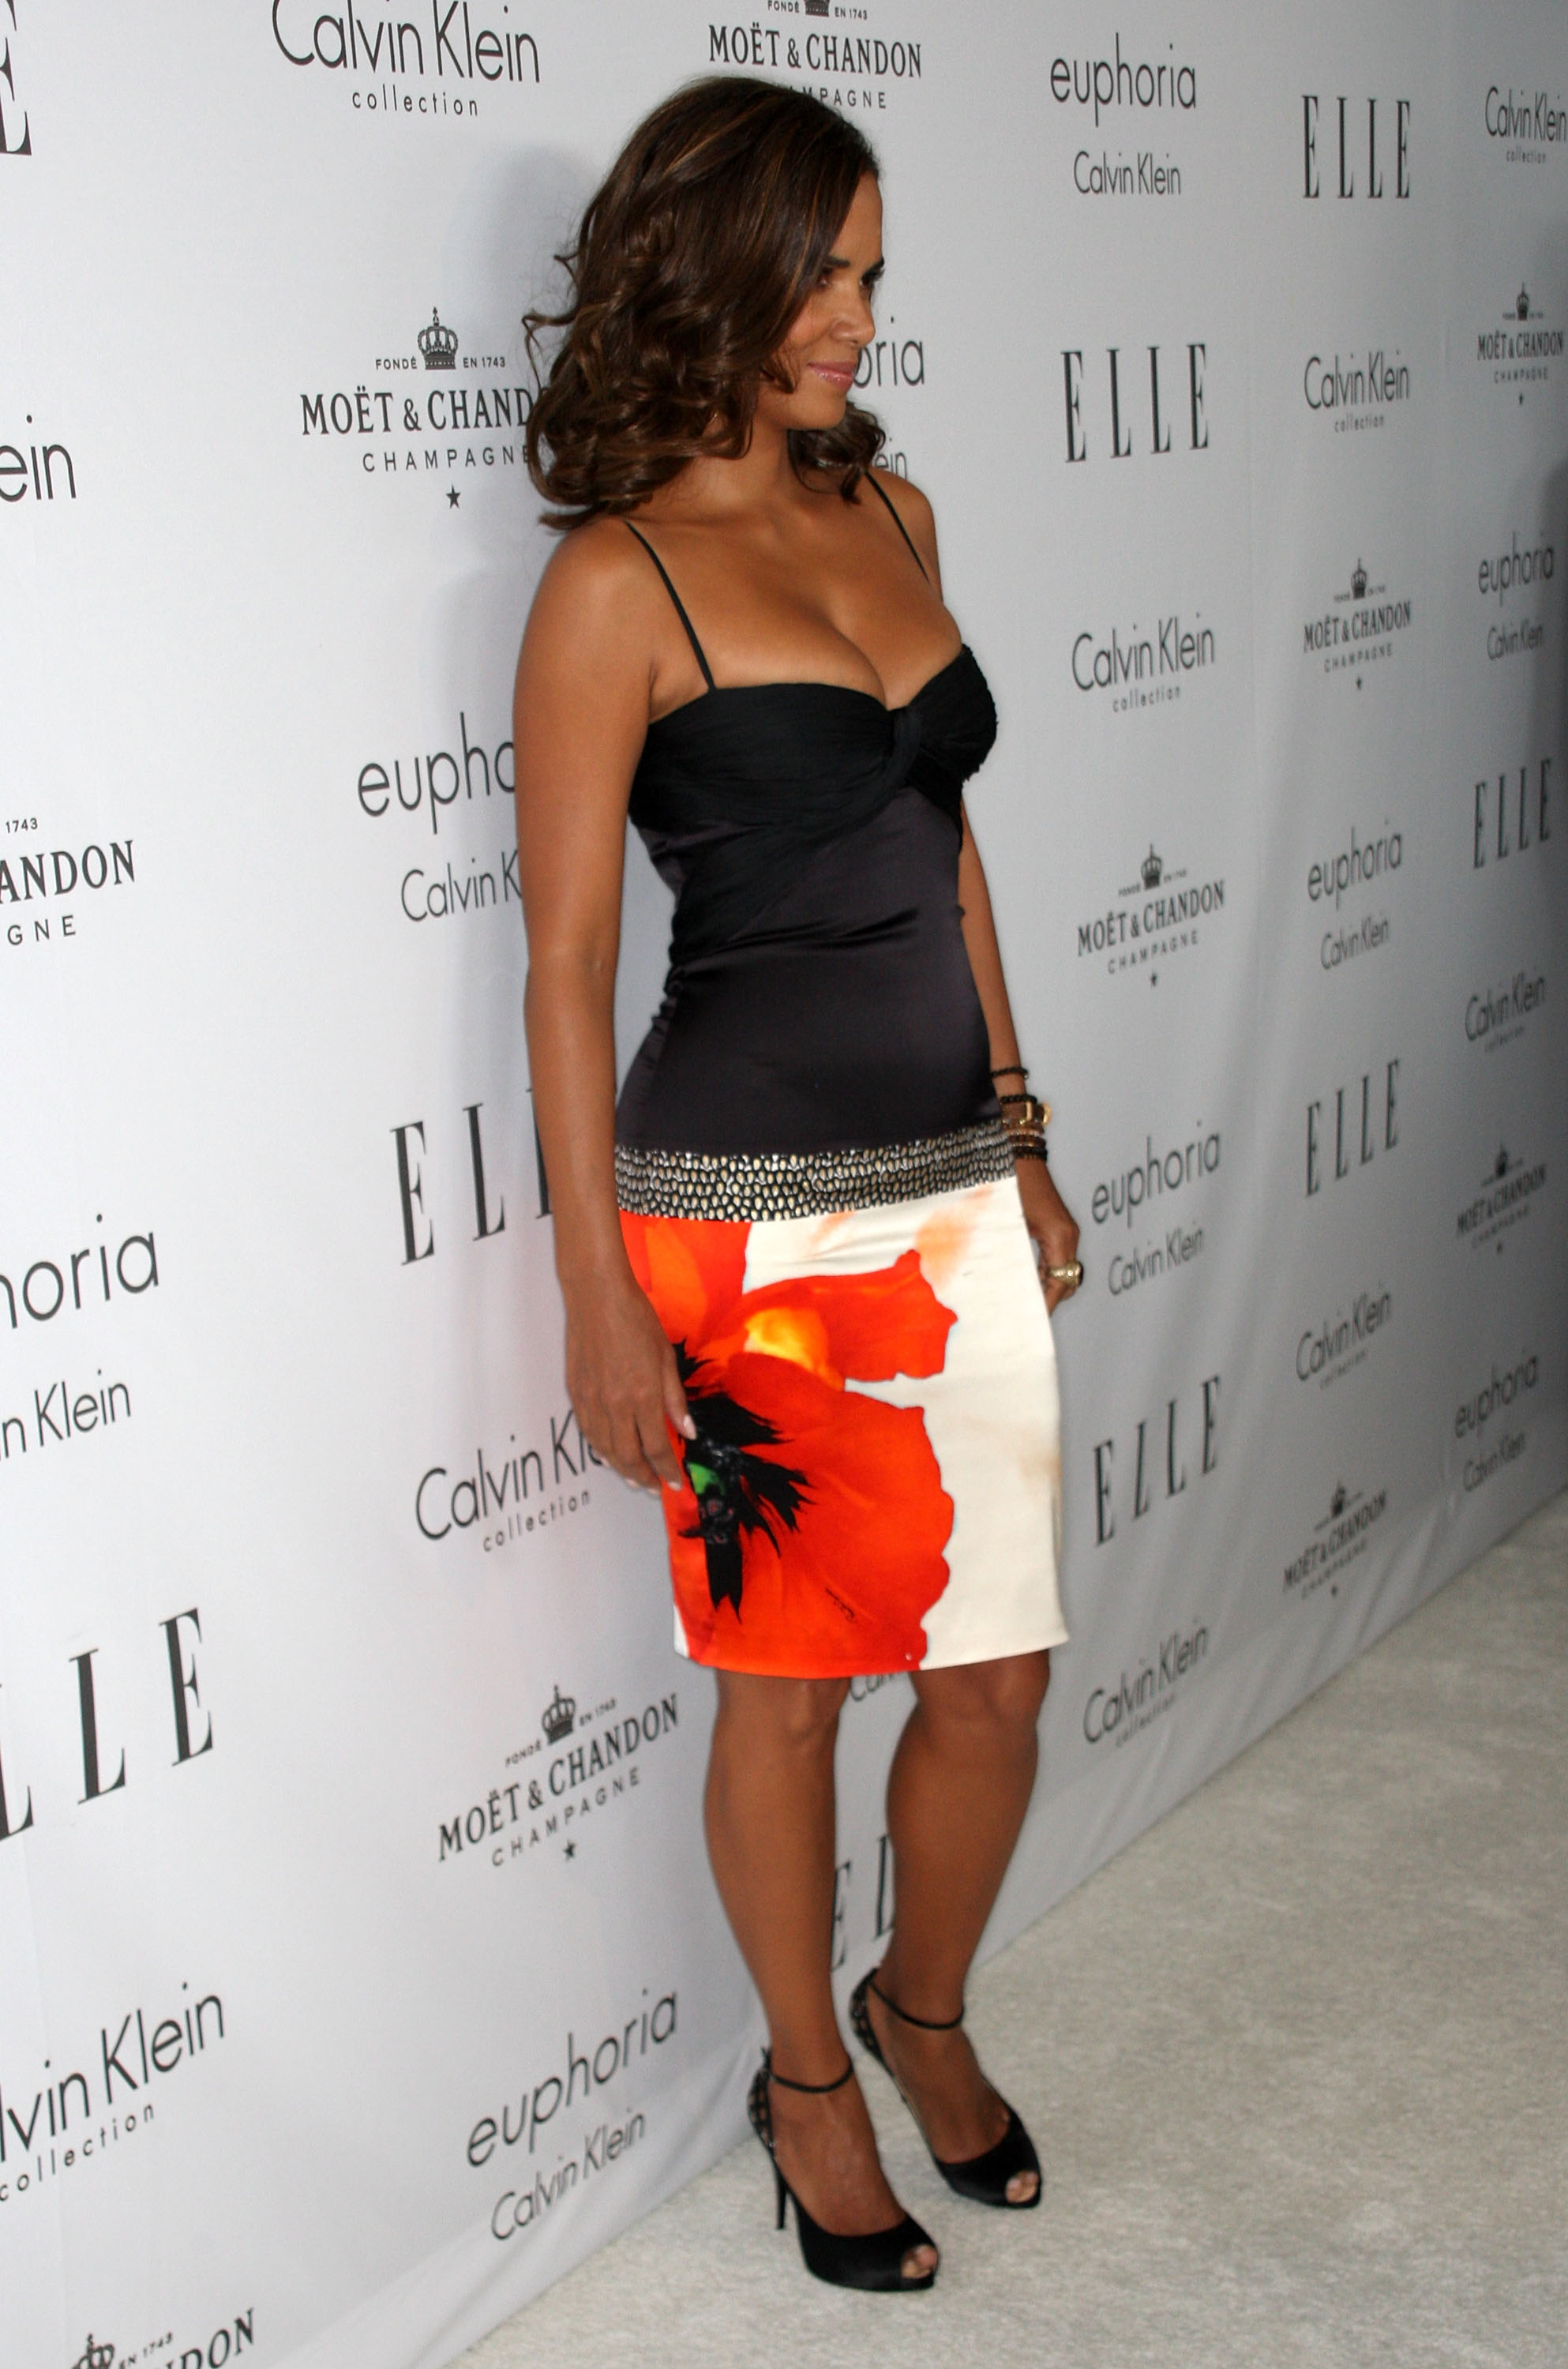 59519_Celebutopia-Halle_Berry-15th_annual_Women_In_Hollywood_Tribute-07_122_46lo.jpg